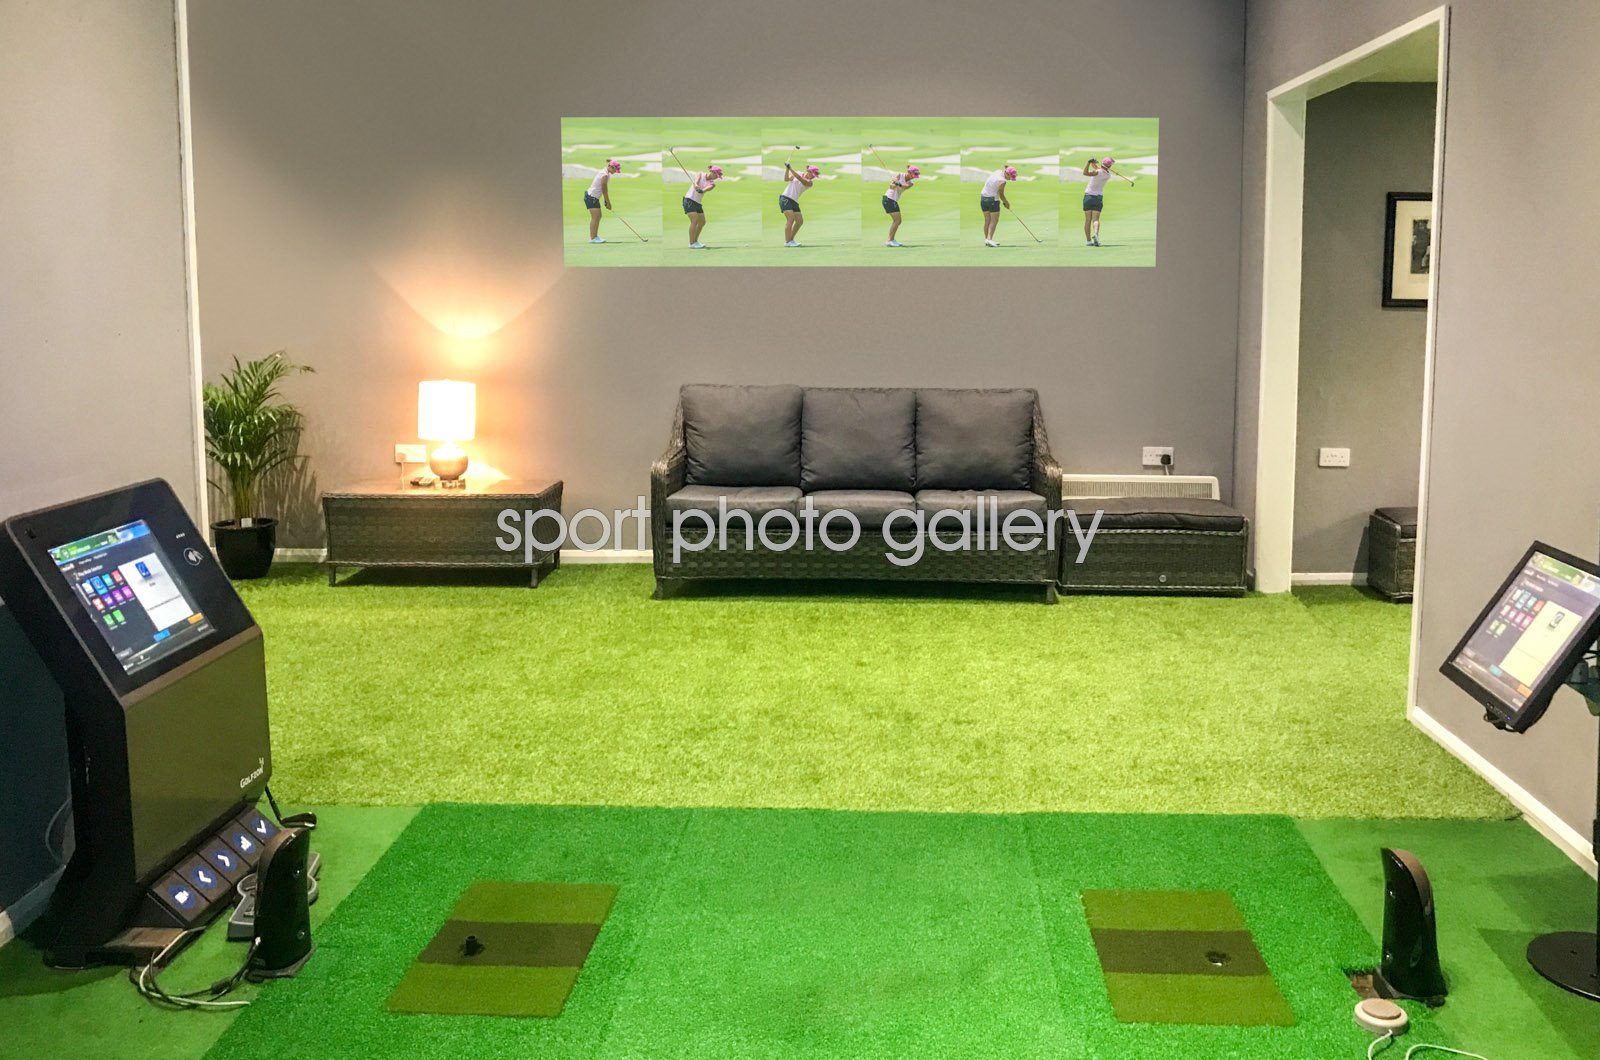 Lydia Ko 6 Stage Swing Sequence 2015 Wall Sticker